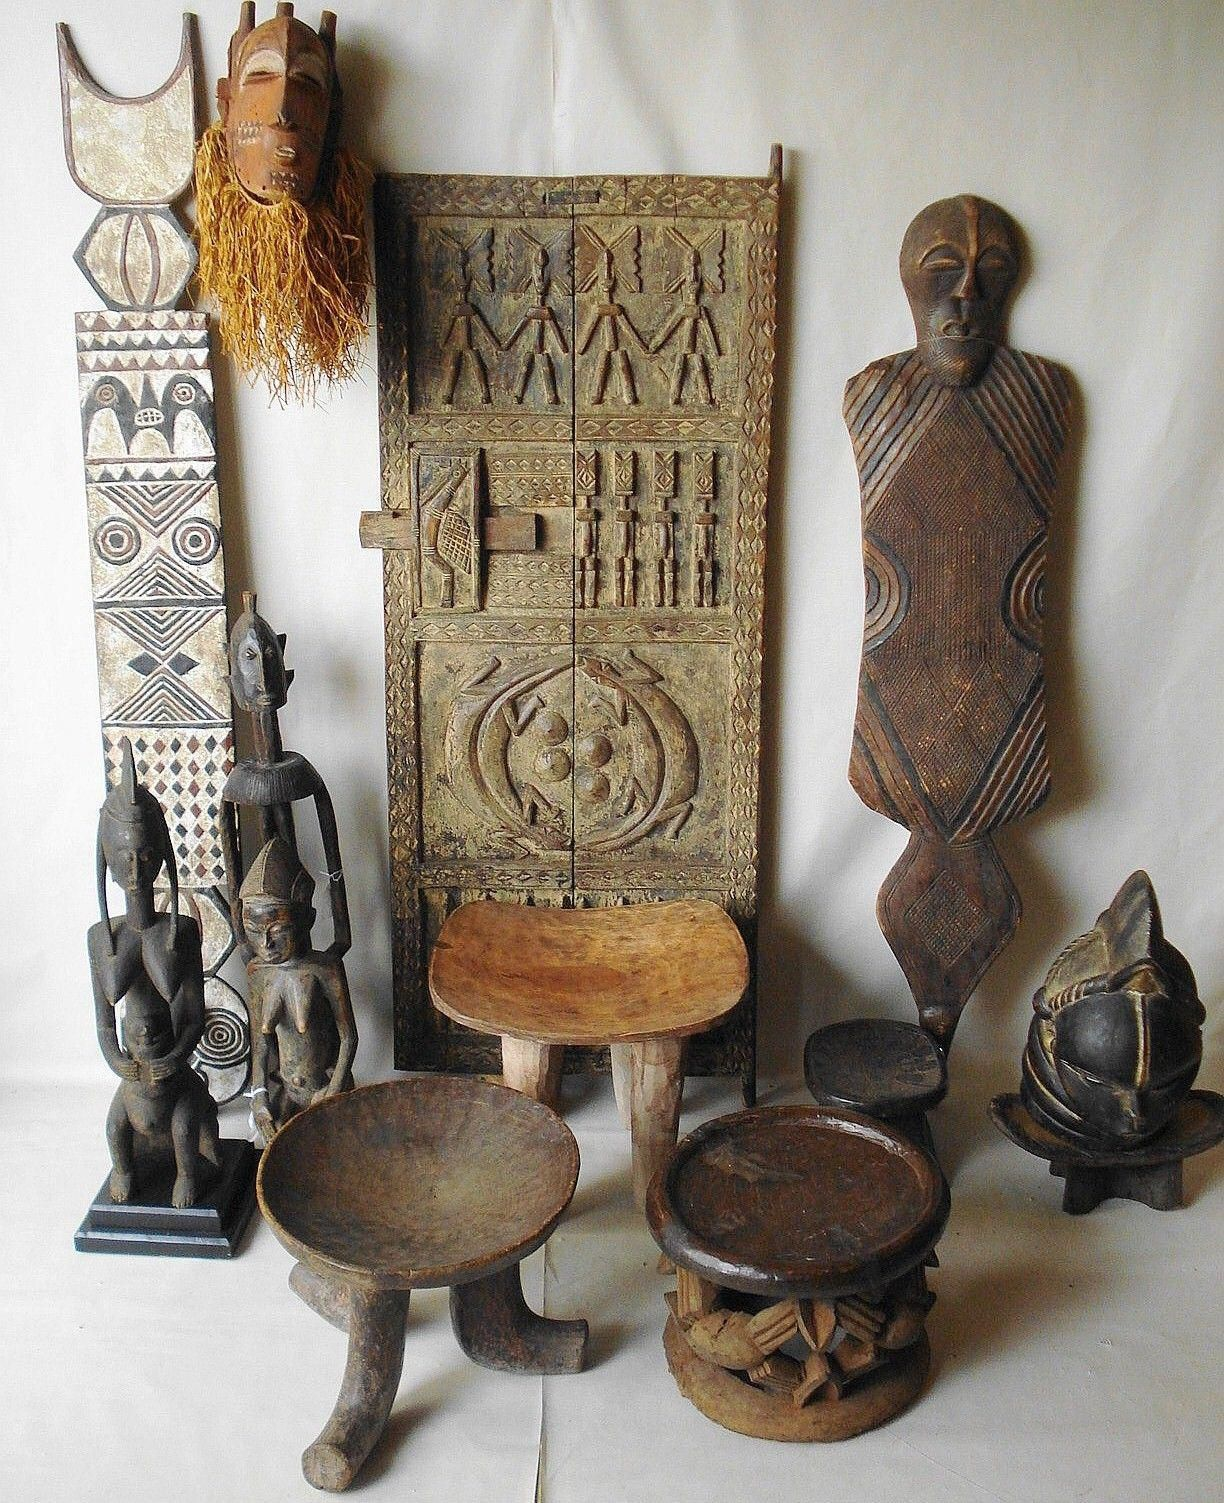 African Home Design African Home Decor Ideas With African: African Art At Ethnika #africanfurniture